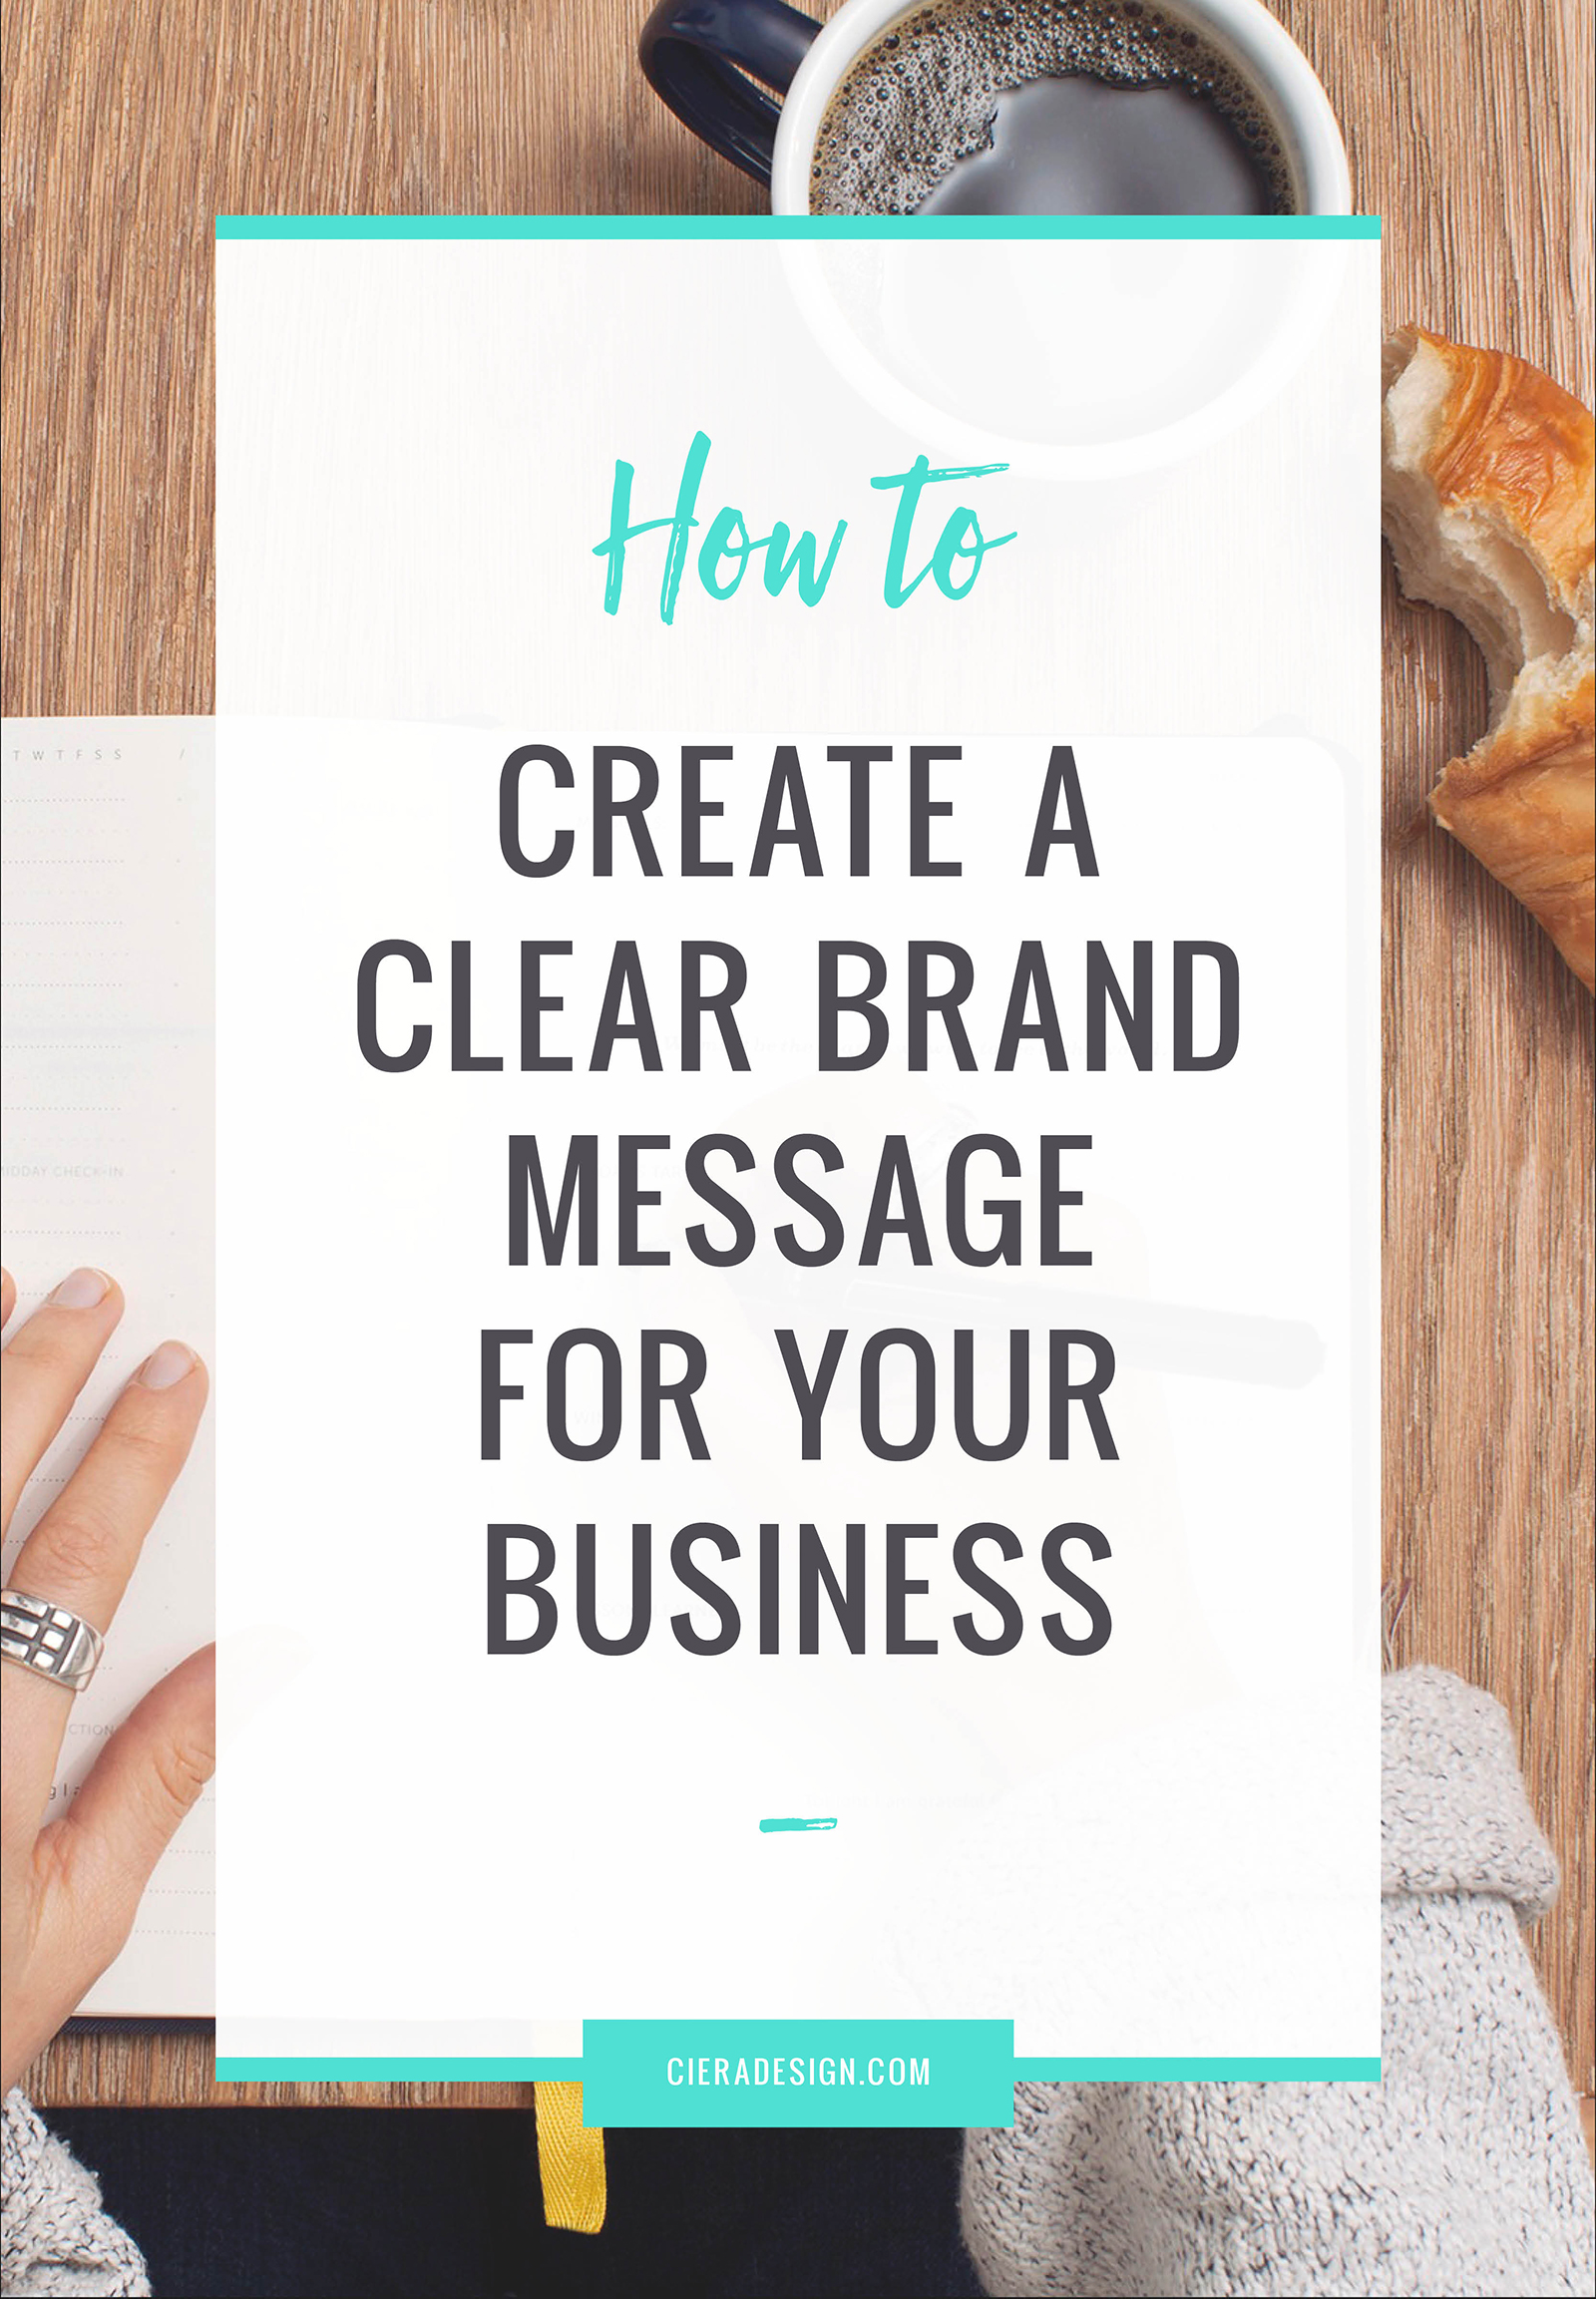 If you're wondering how to create a clear brand message for your business, then here are some top tips.